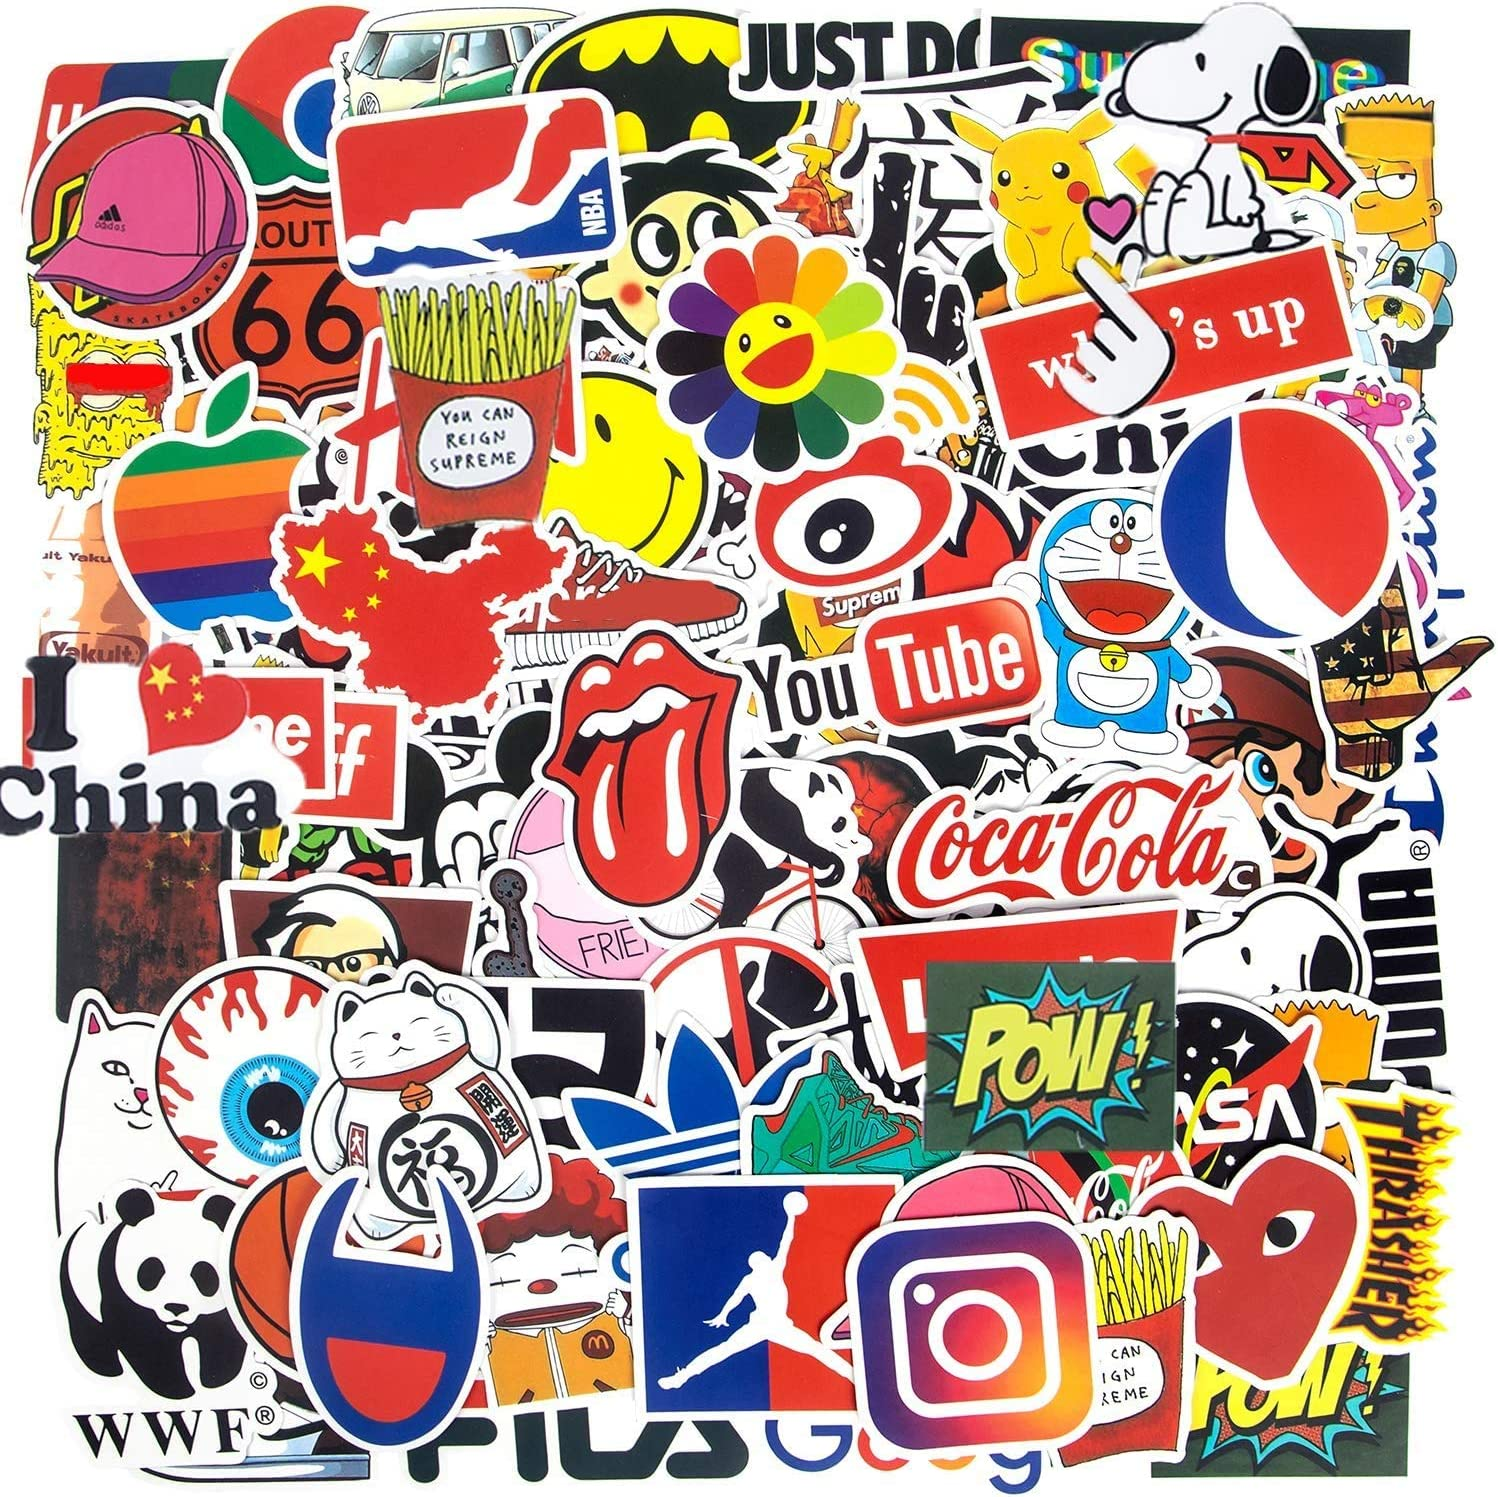 100-Pcs Cool Stickers Logo Sticker Fashion Brand Stickers Laptop Cars Punk Classic Vinyl Waterproof Graffiti, Multi Style Stickers,Teen&Adult (color7)